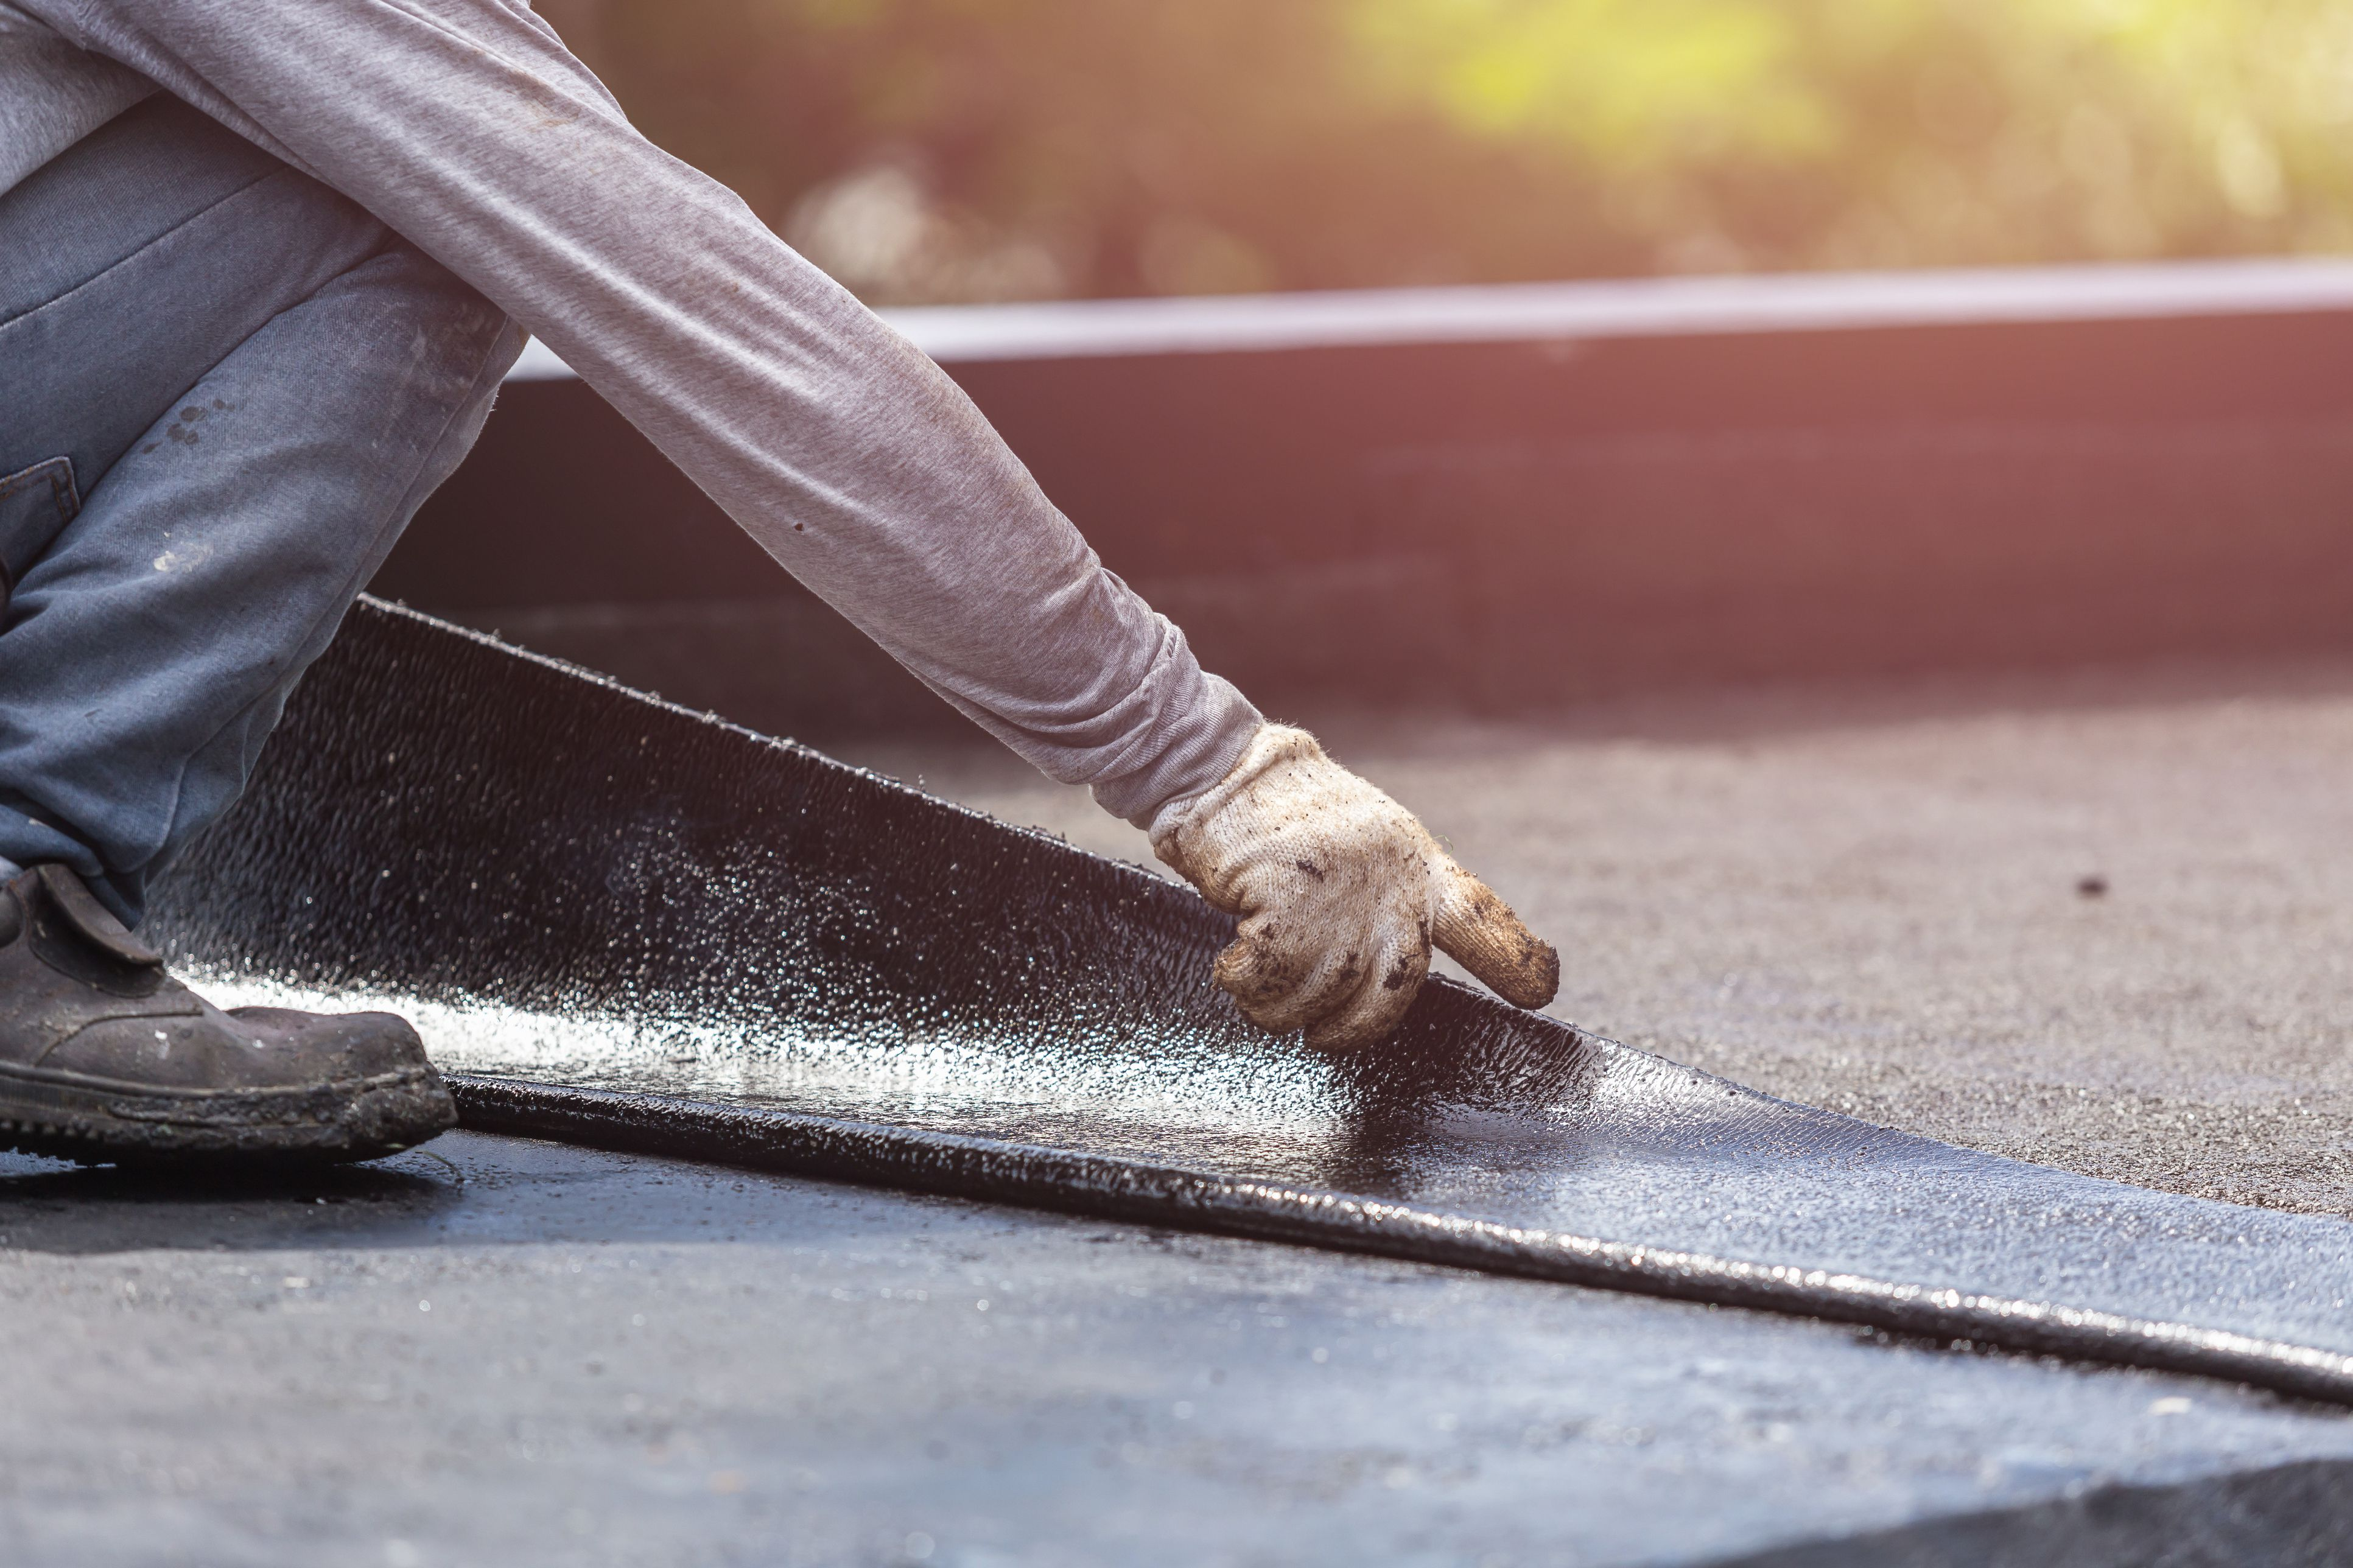 Removing Tar Stains From Clothes Carpet And Upholstery